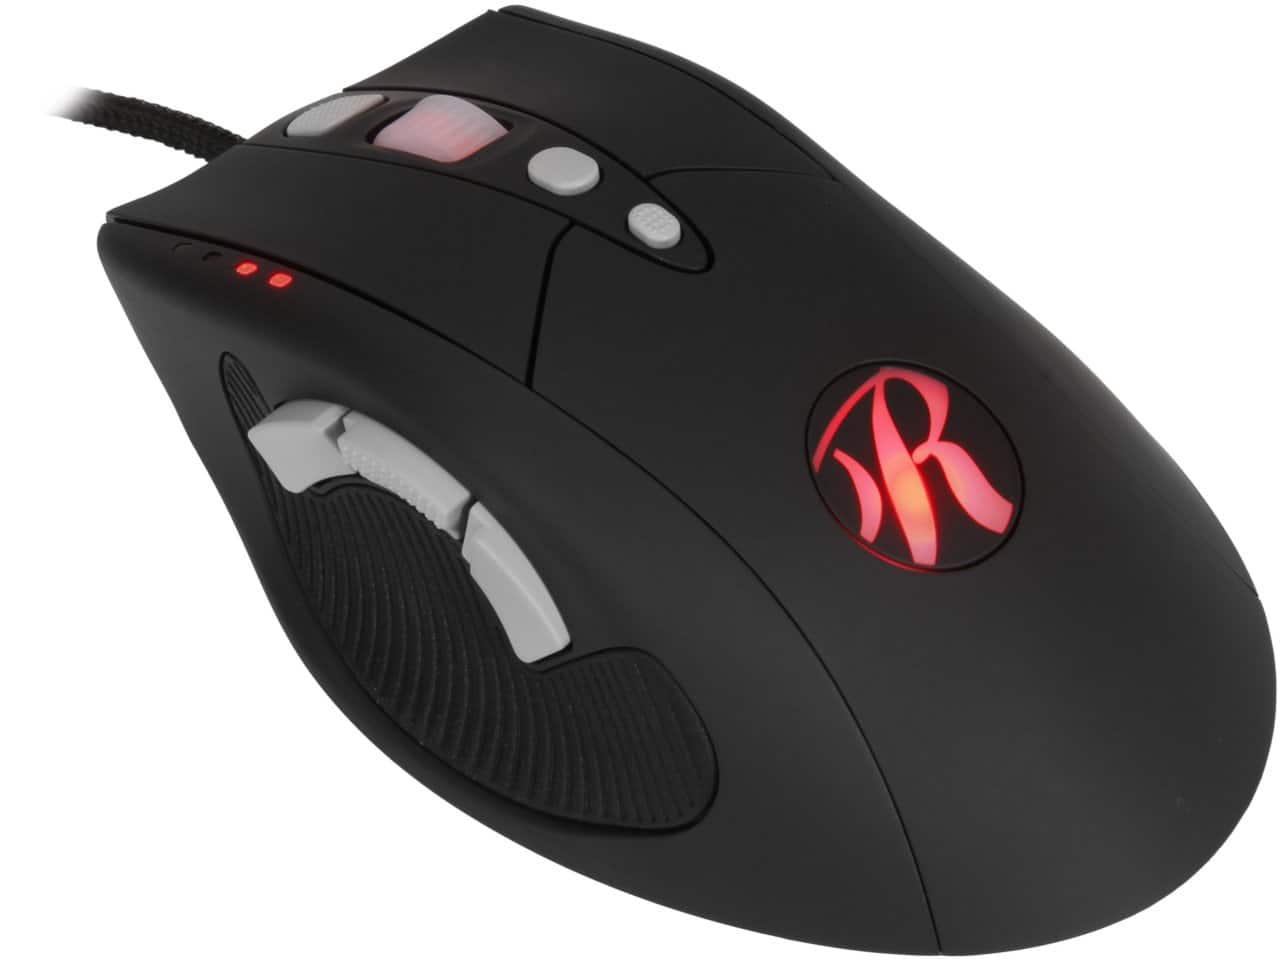 Rosewill Gaming Mouse, or Earbuds  Free after Rebates + S/H